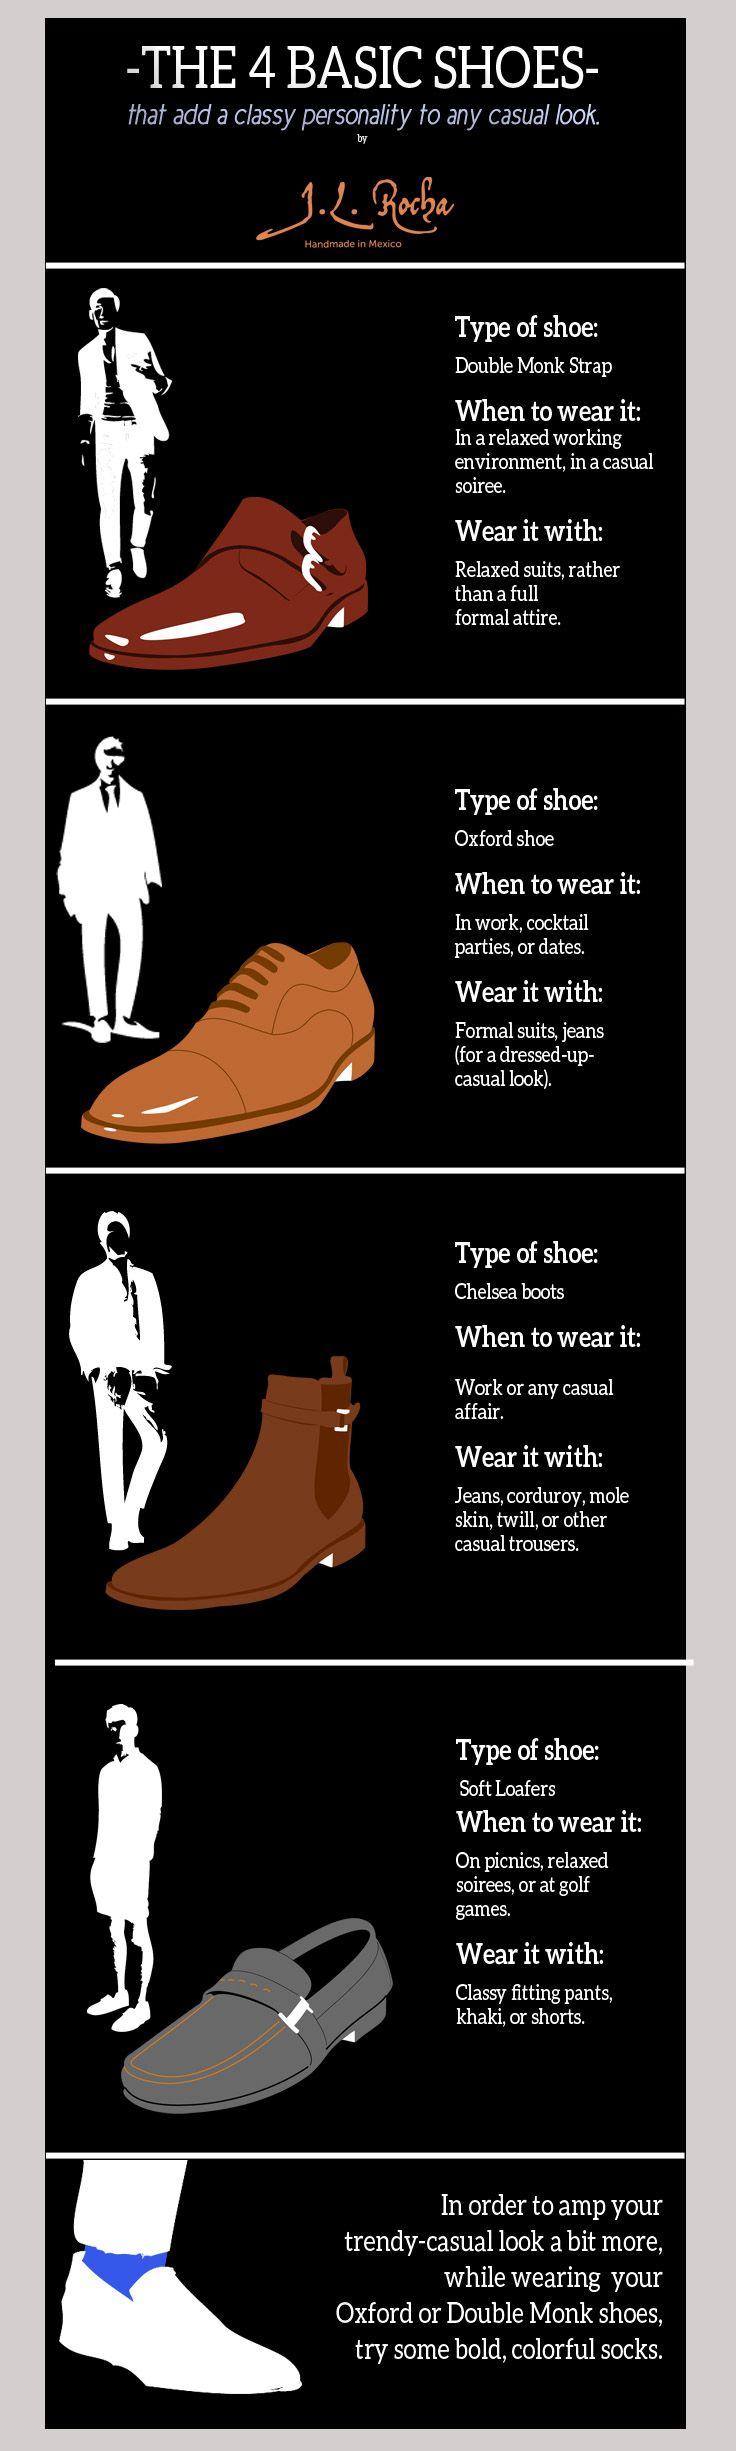 The 4 Basic Shoes that add a classy personality to any casual look.